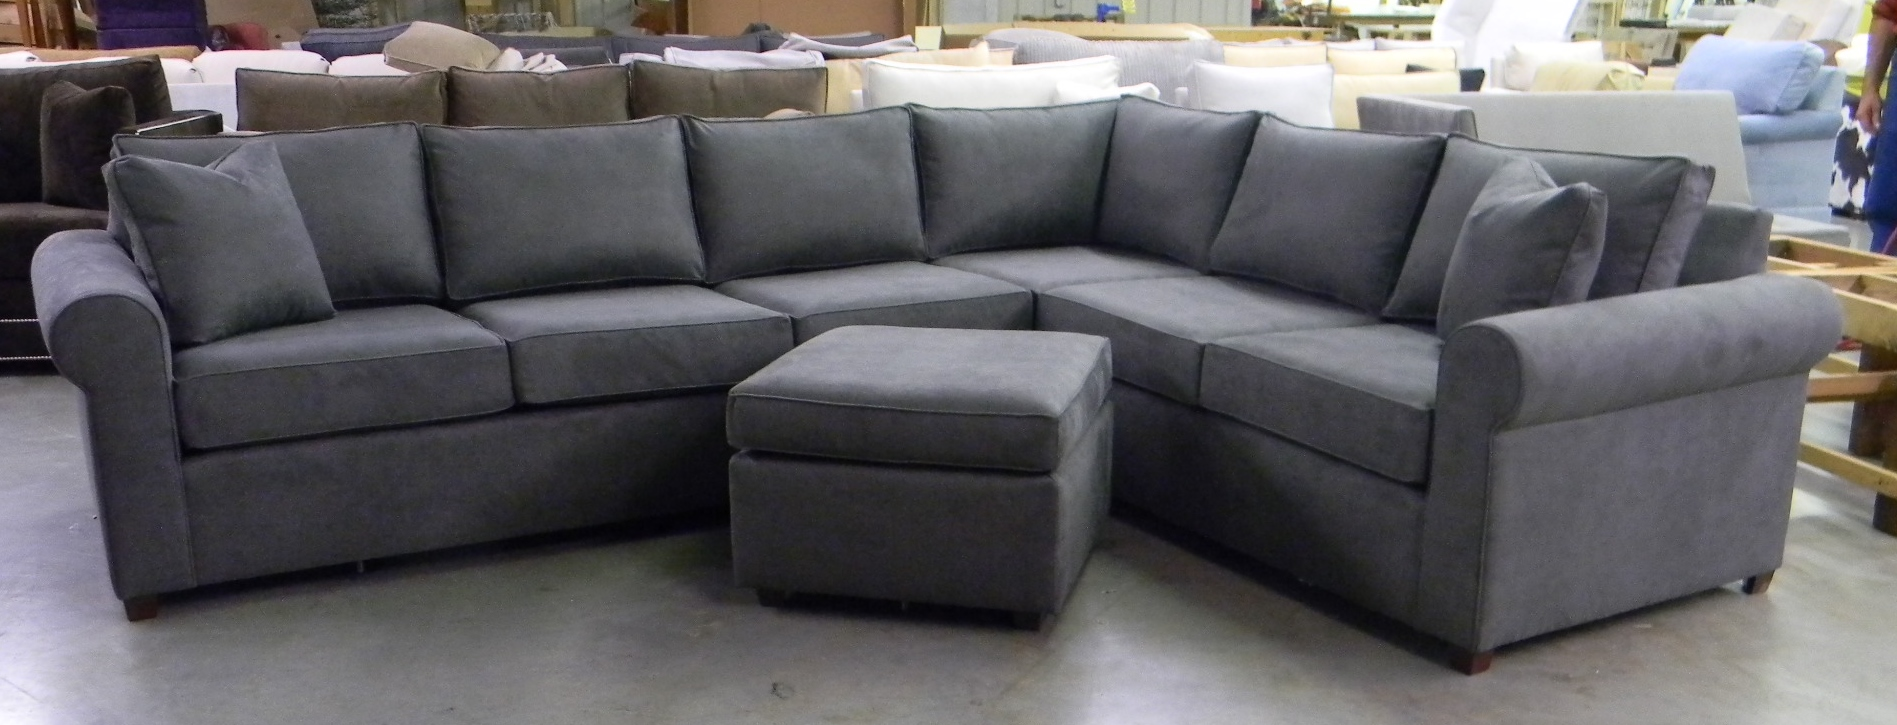 Made Sofa Reviews Sofas And Loveseats Sectionals Sectional Sofas Custom North